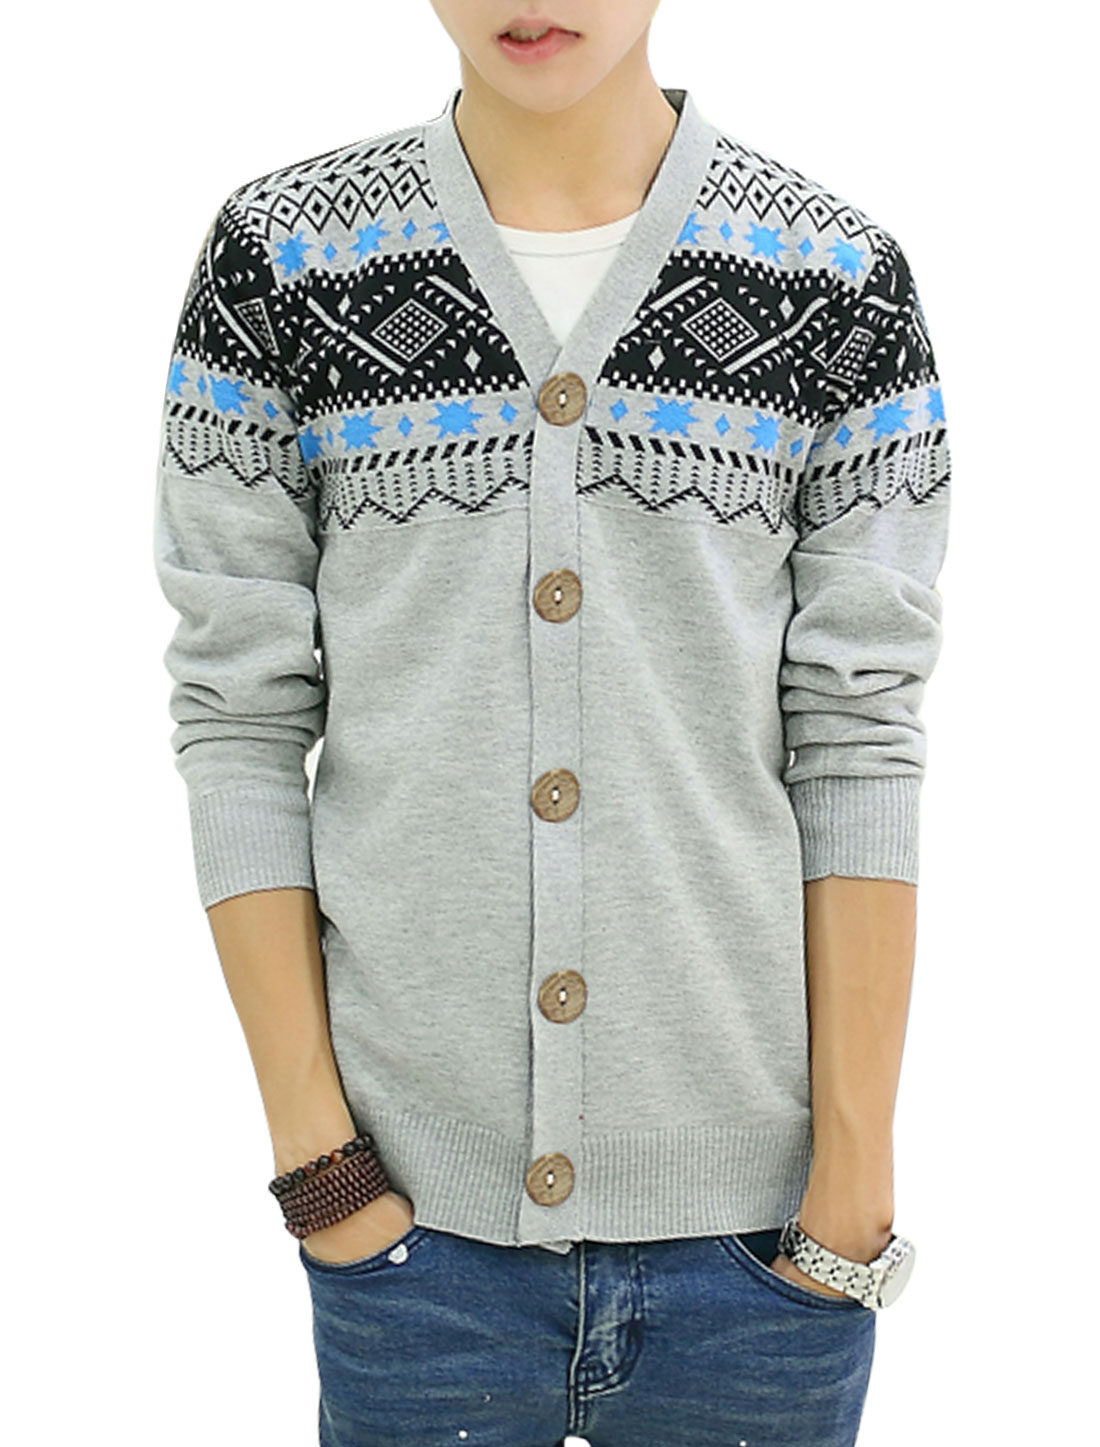 Men Single Breasted Geometric Novelty Print Casual Cardigan Light Gray S